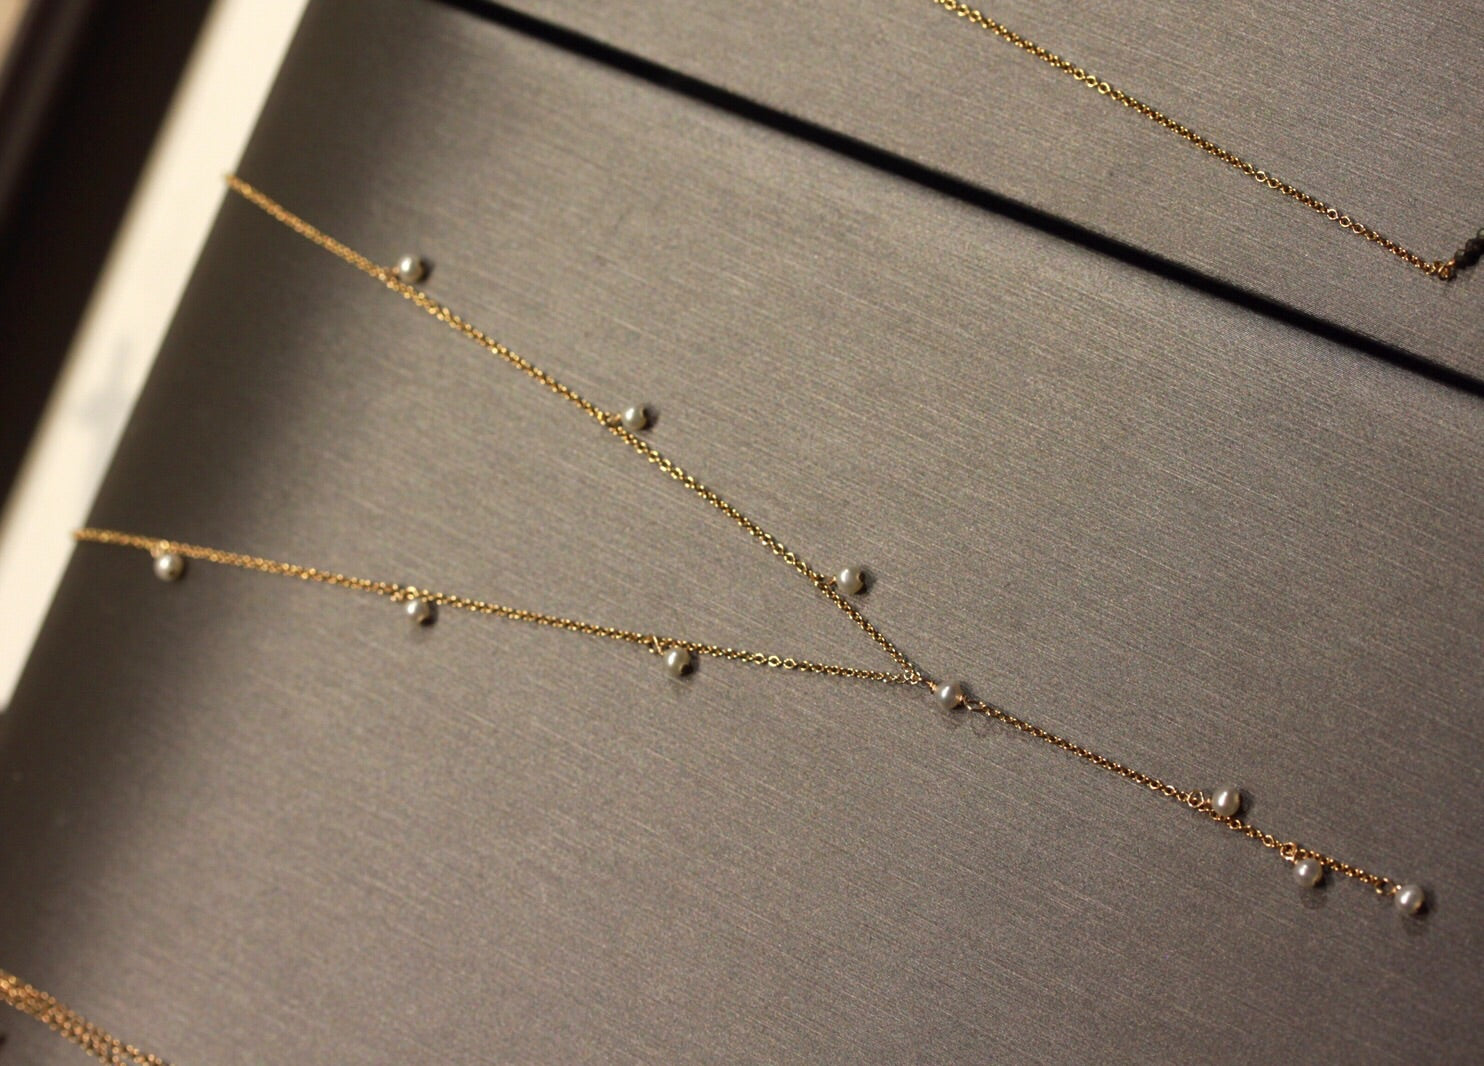 Dainty 14k Gold Filled Lariat Necklace with Natural Freshwater Pearls